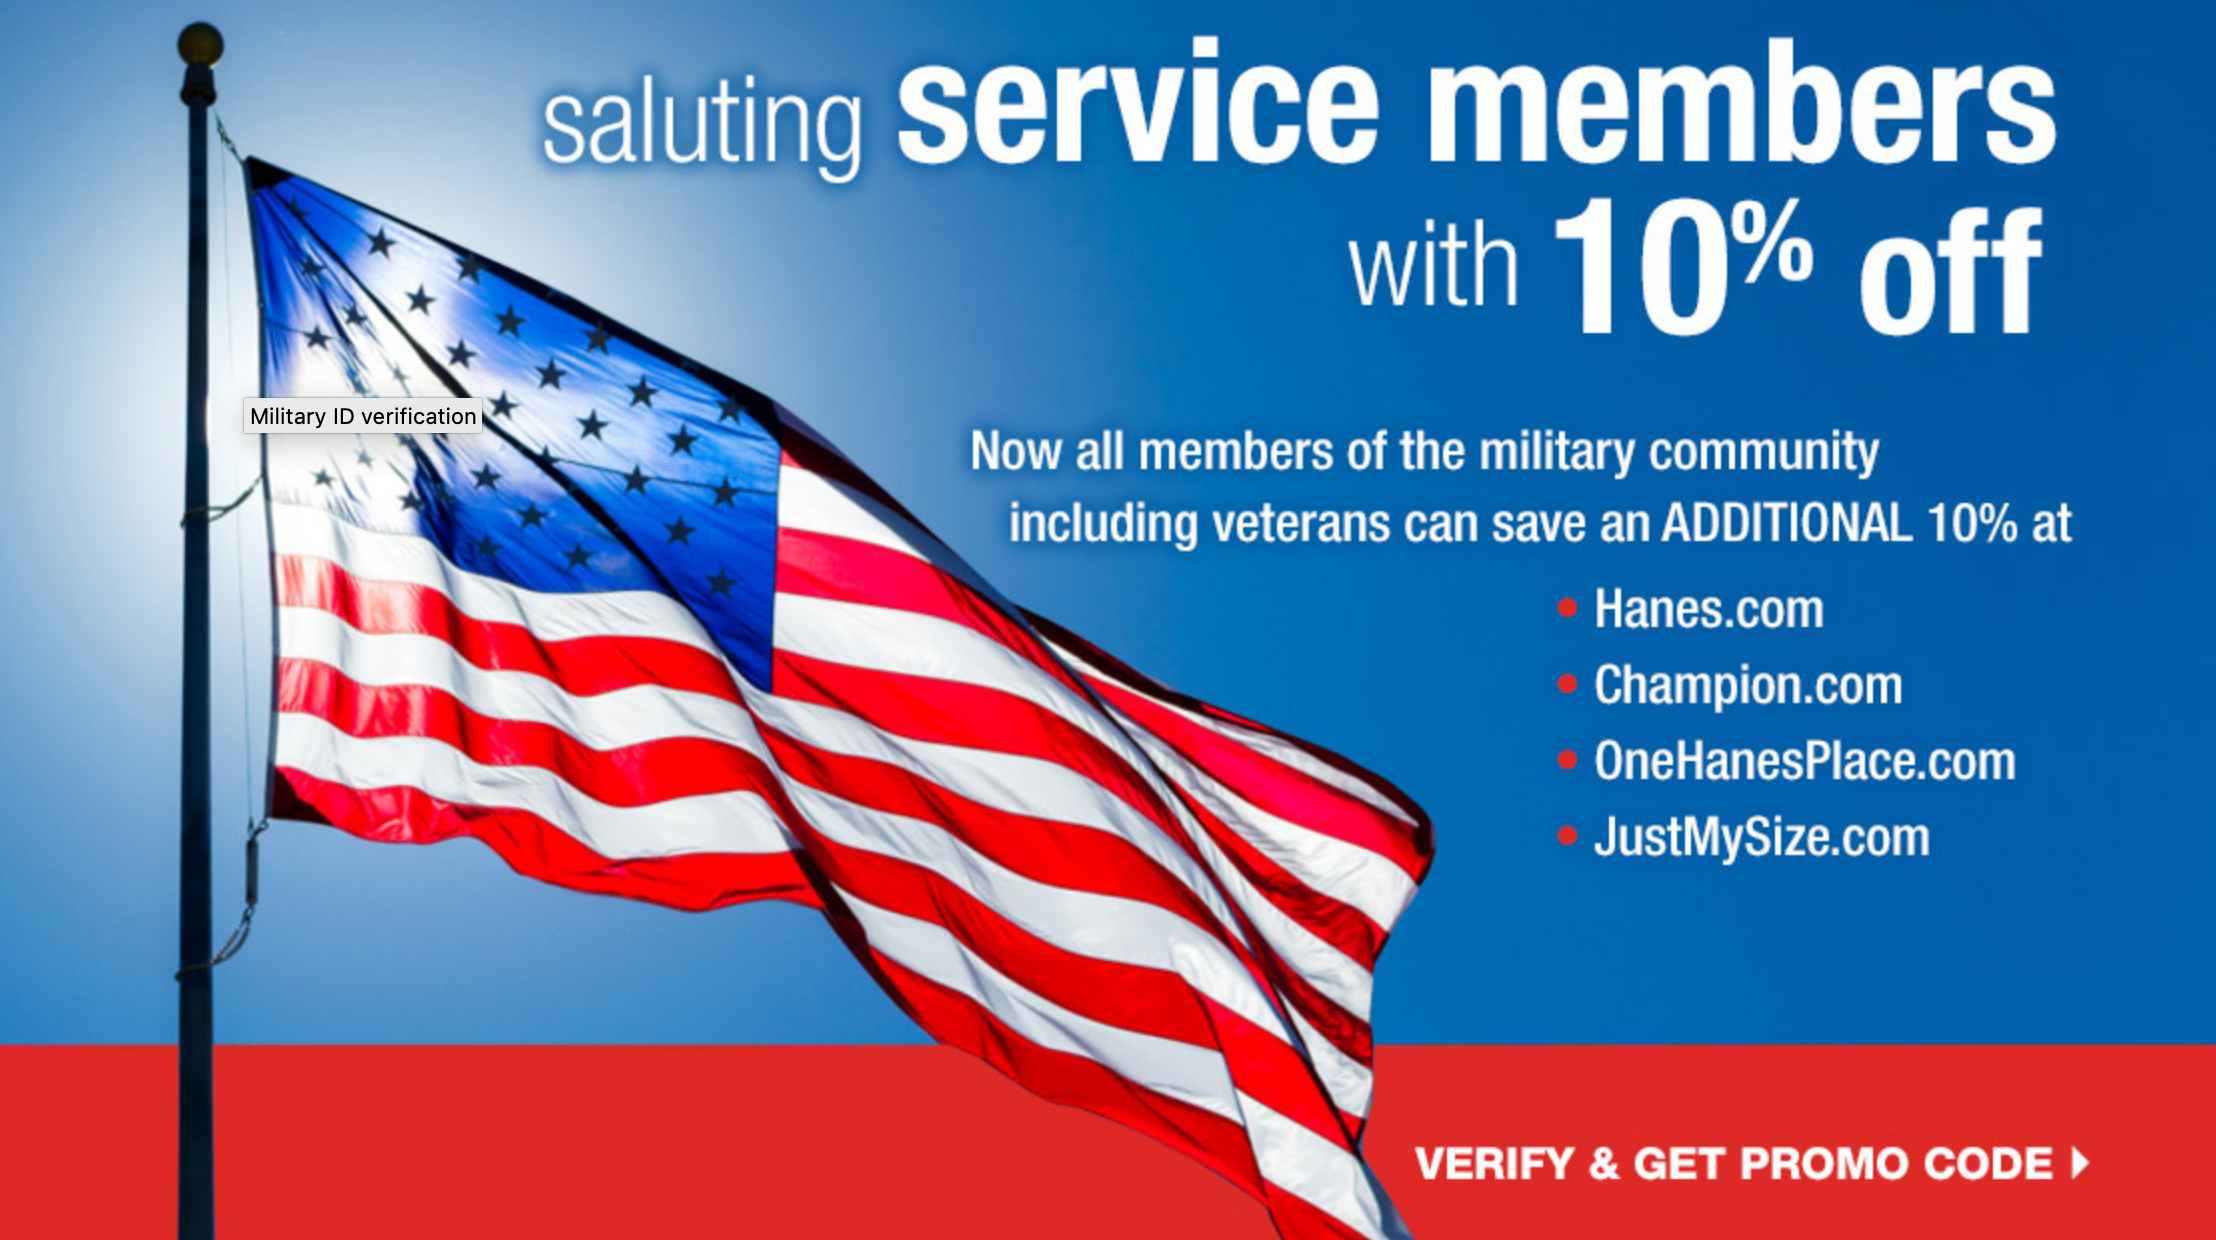 OneHanesPlace.com Military Veteran Discounts